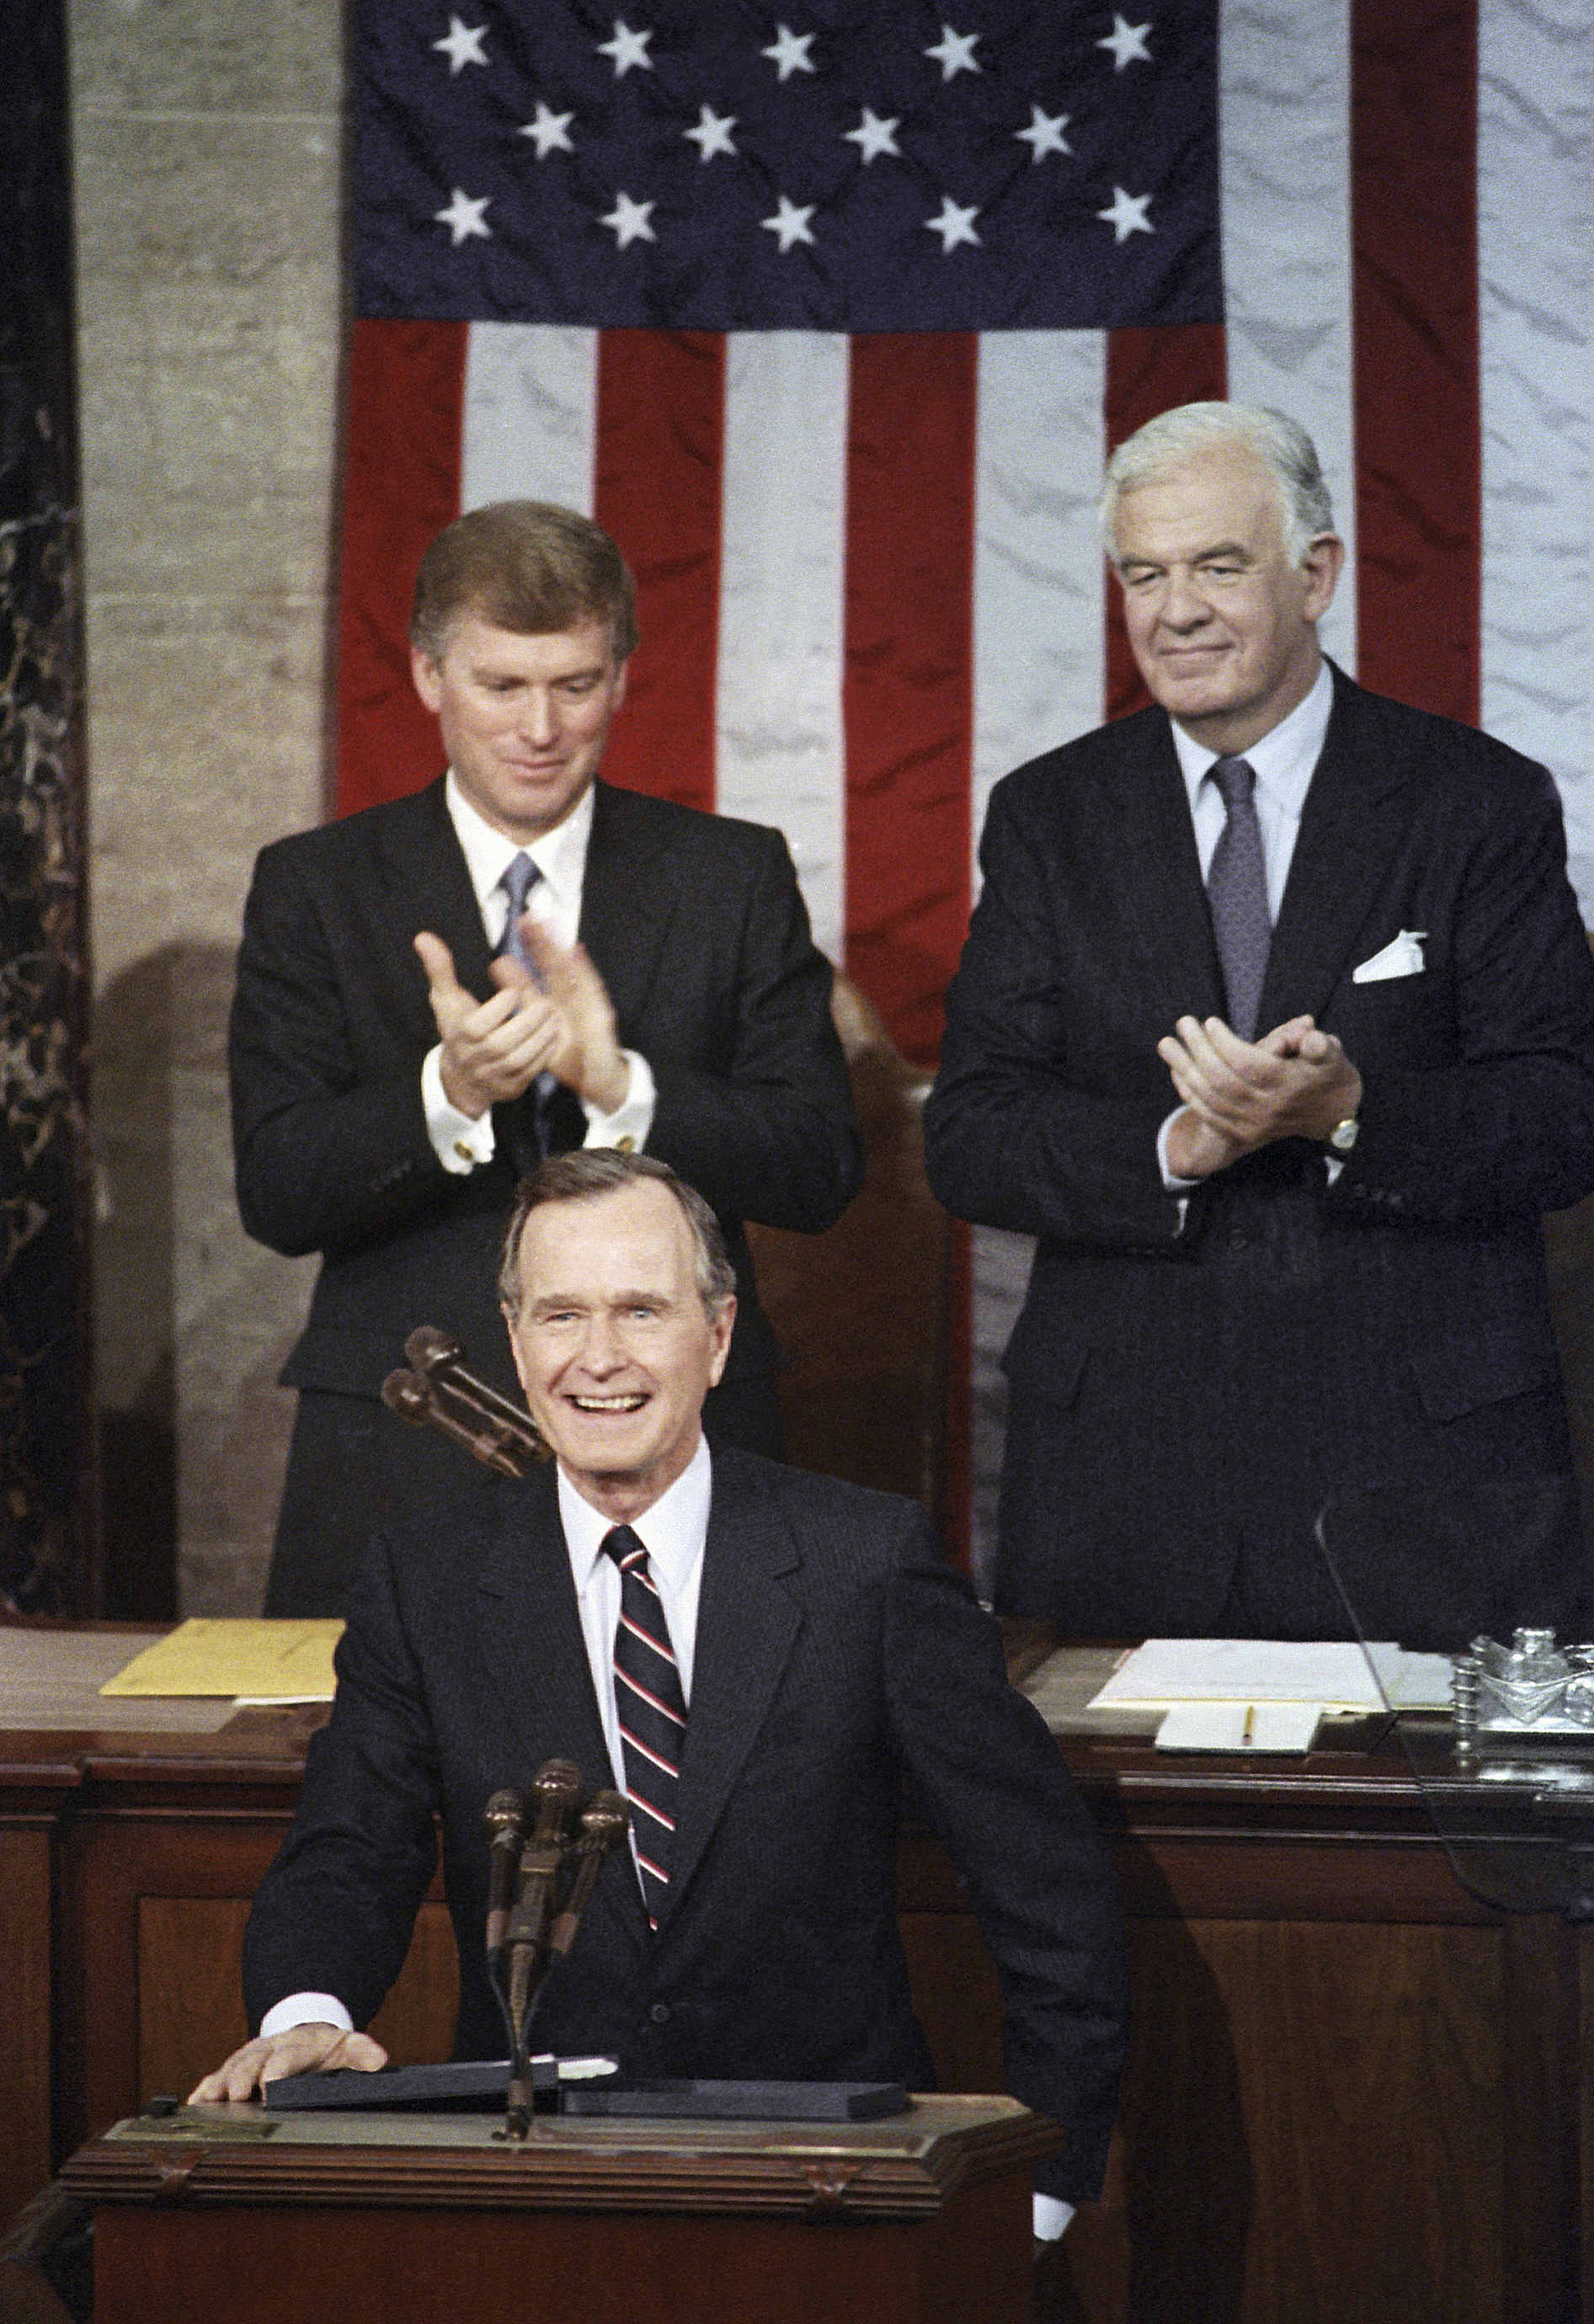 In this Jan. 31, 1990, photo, President George H.W. Bush receives applause from Vice President Dan Quayle, left, and House Speaker Thomas Foley prior to delivering his first State of the Union address on Capitol Hill in Washington. (AP Photo/Bob Daugherty, File)